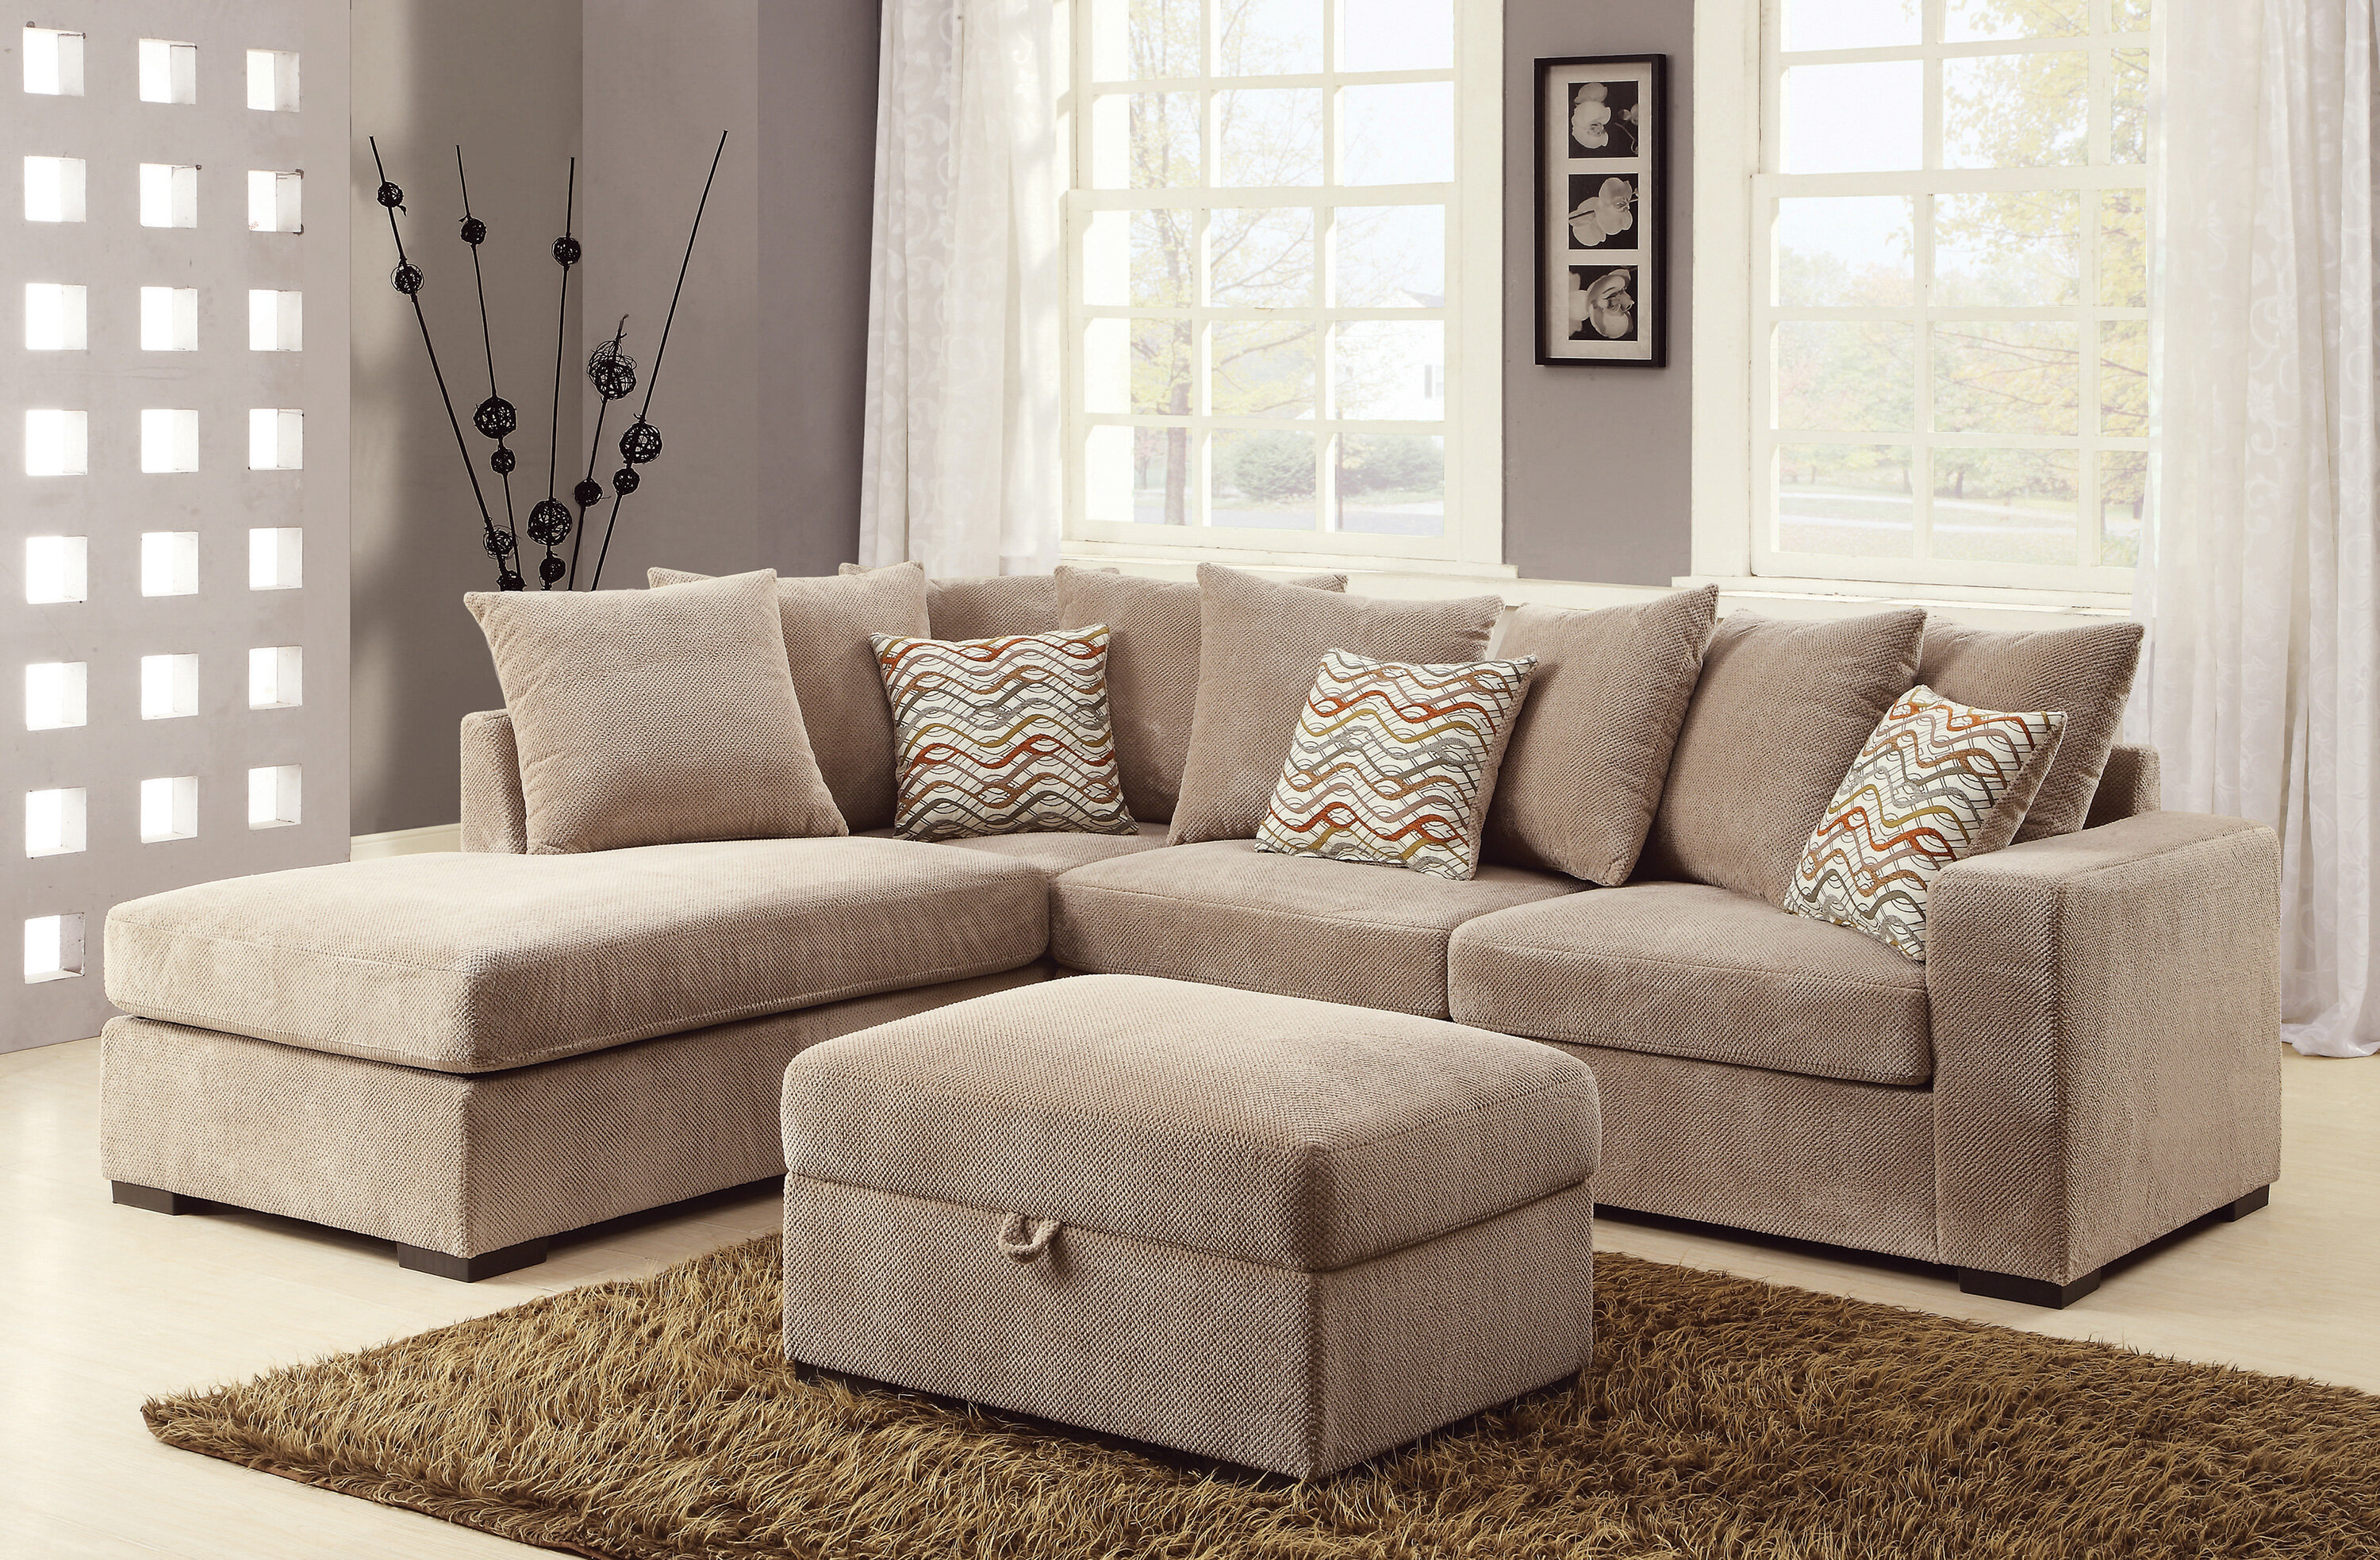 arm double chaise contemporary right furniture facing sectional shaped by products sofa l with